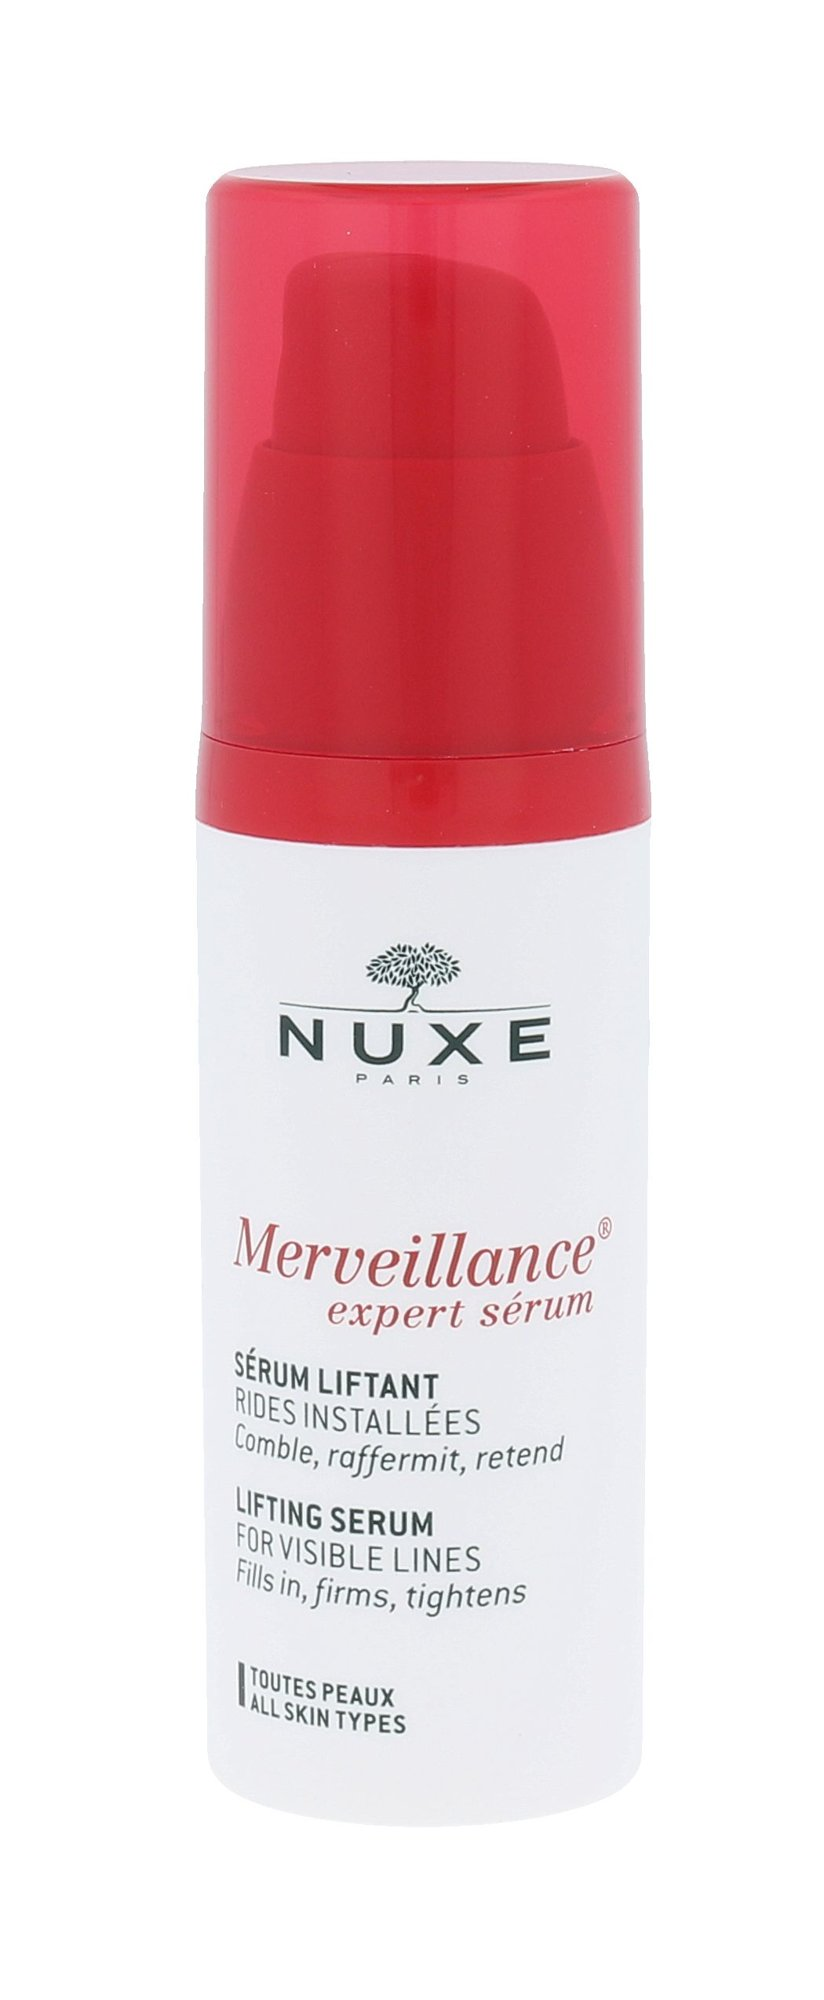 Nuxe Merveillance Lifting Serum For Visible Lines Cosmetic 30ml